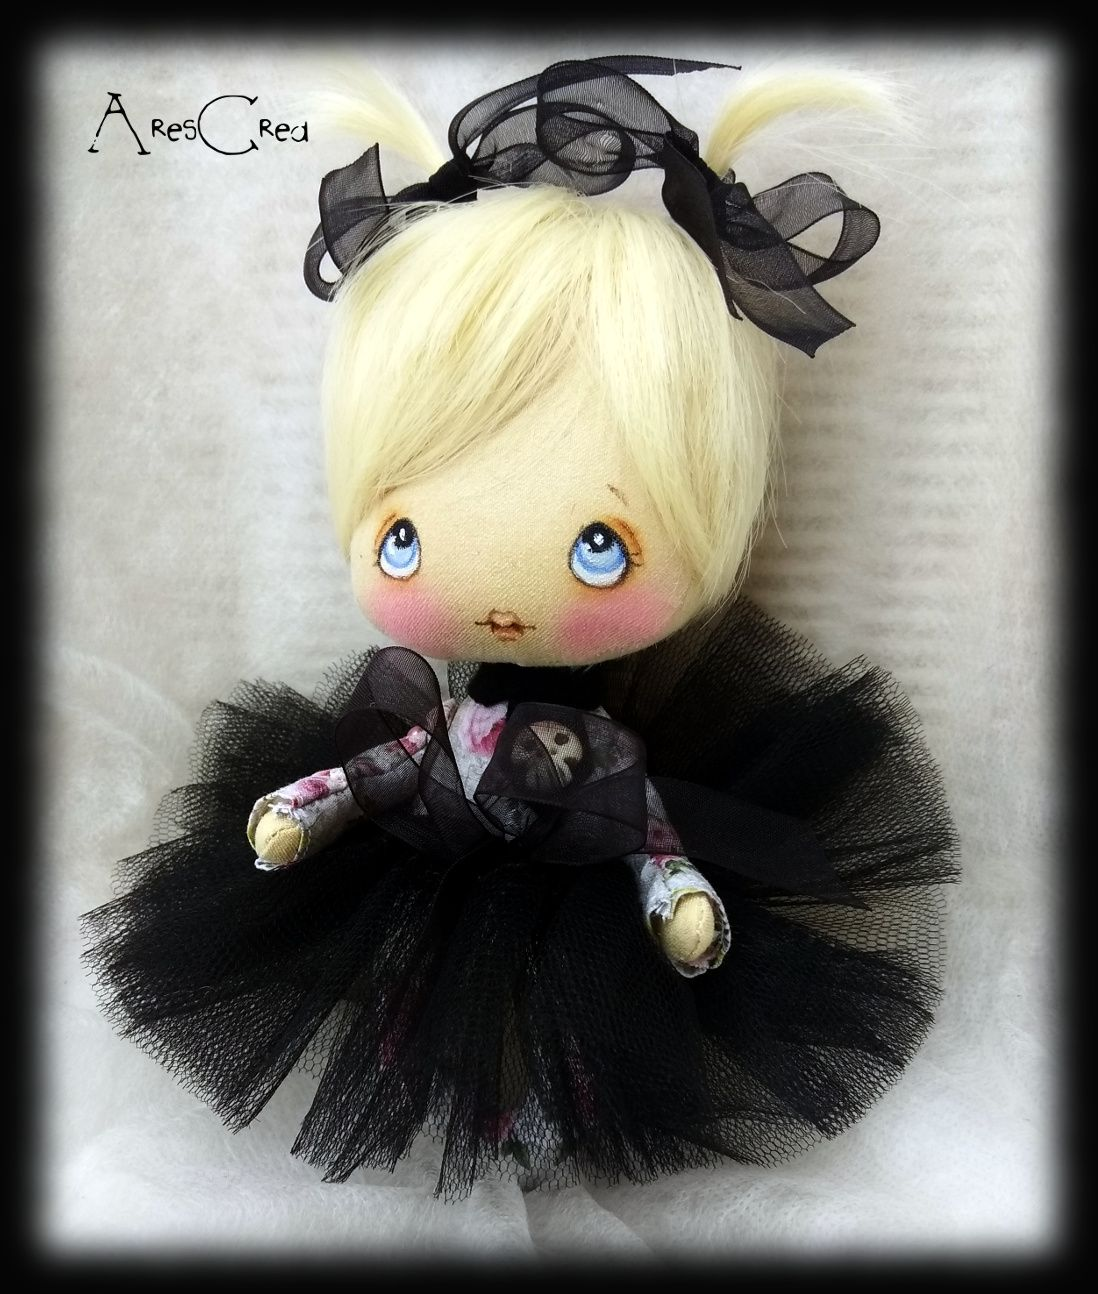 Miniature goth doll Evelyn with blond hair and blue eyes. Handmade by AresCrea on Etsy #goth #doll #miniaturedoll